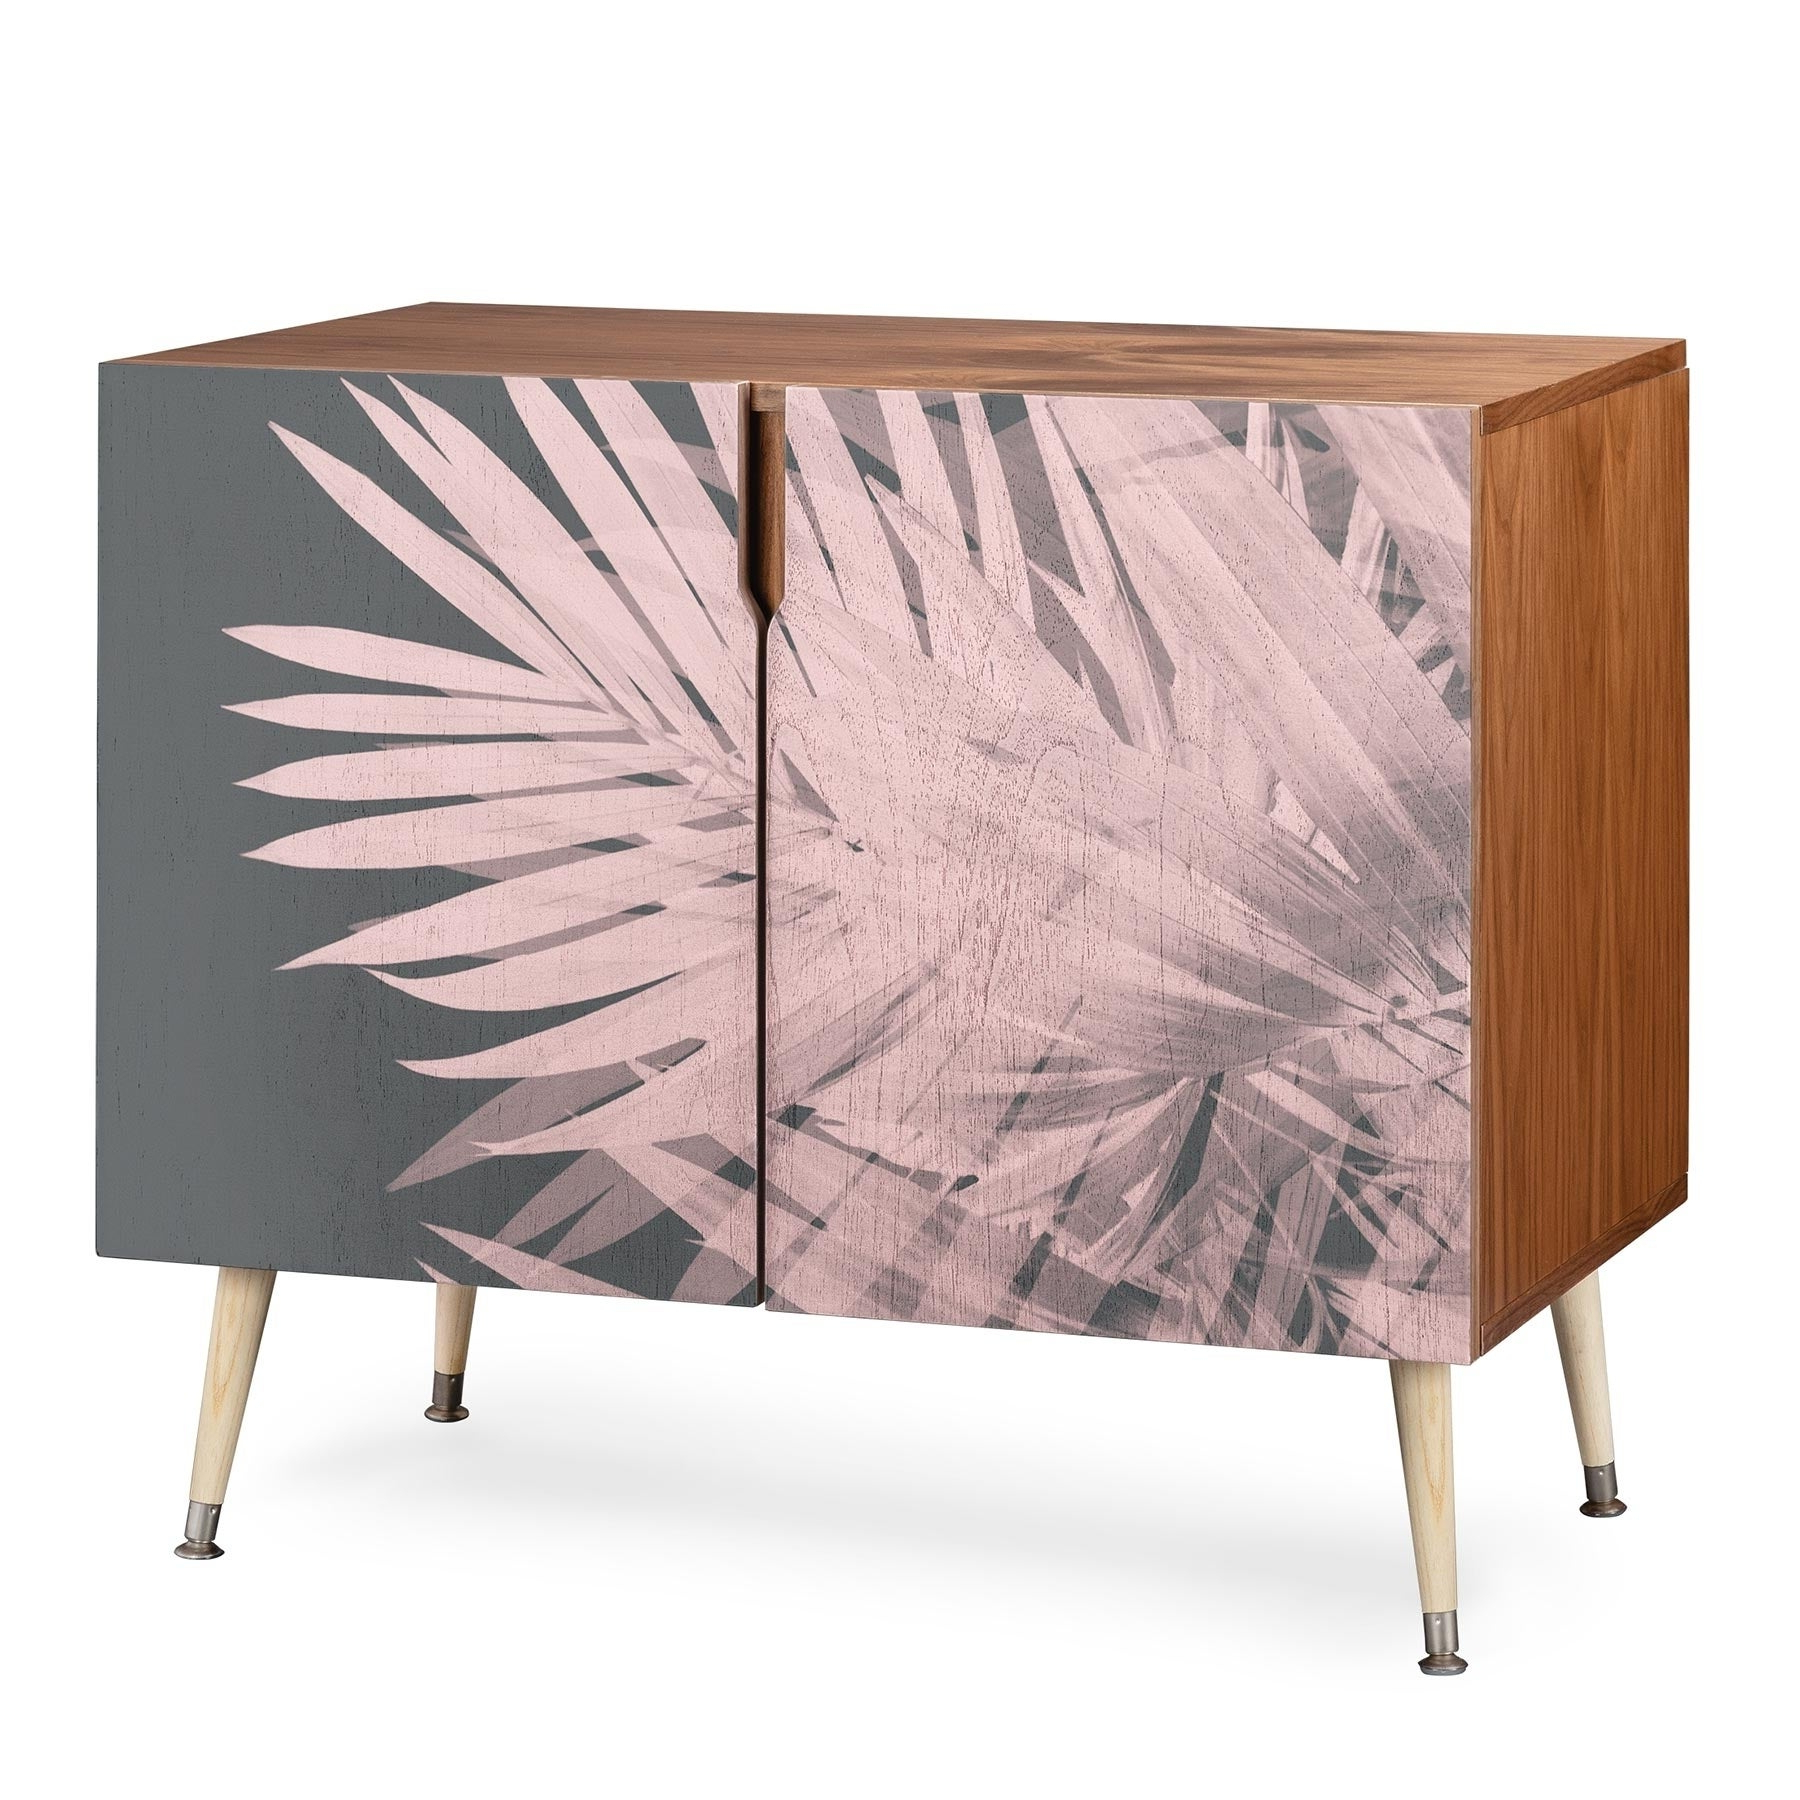 Deny Designs Emanuela Carratoni Blush Palm Leaves Credenza Pertaining To Copper Leaf Wood Credenzas (View 7 of 20)